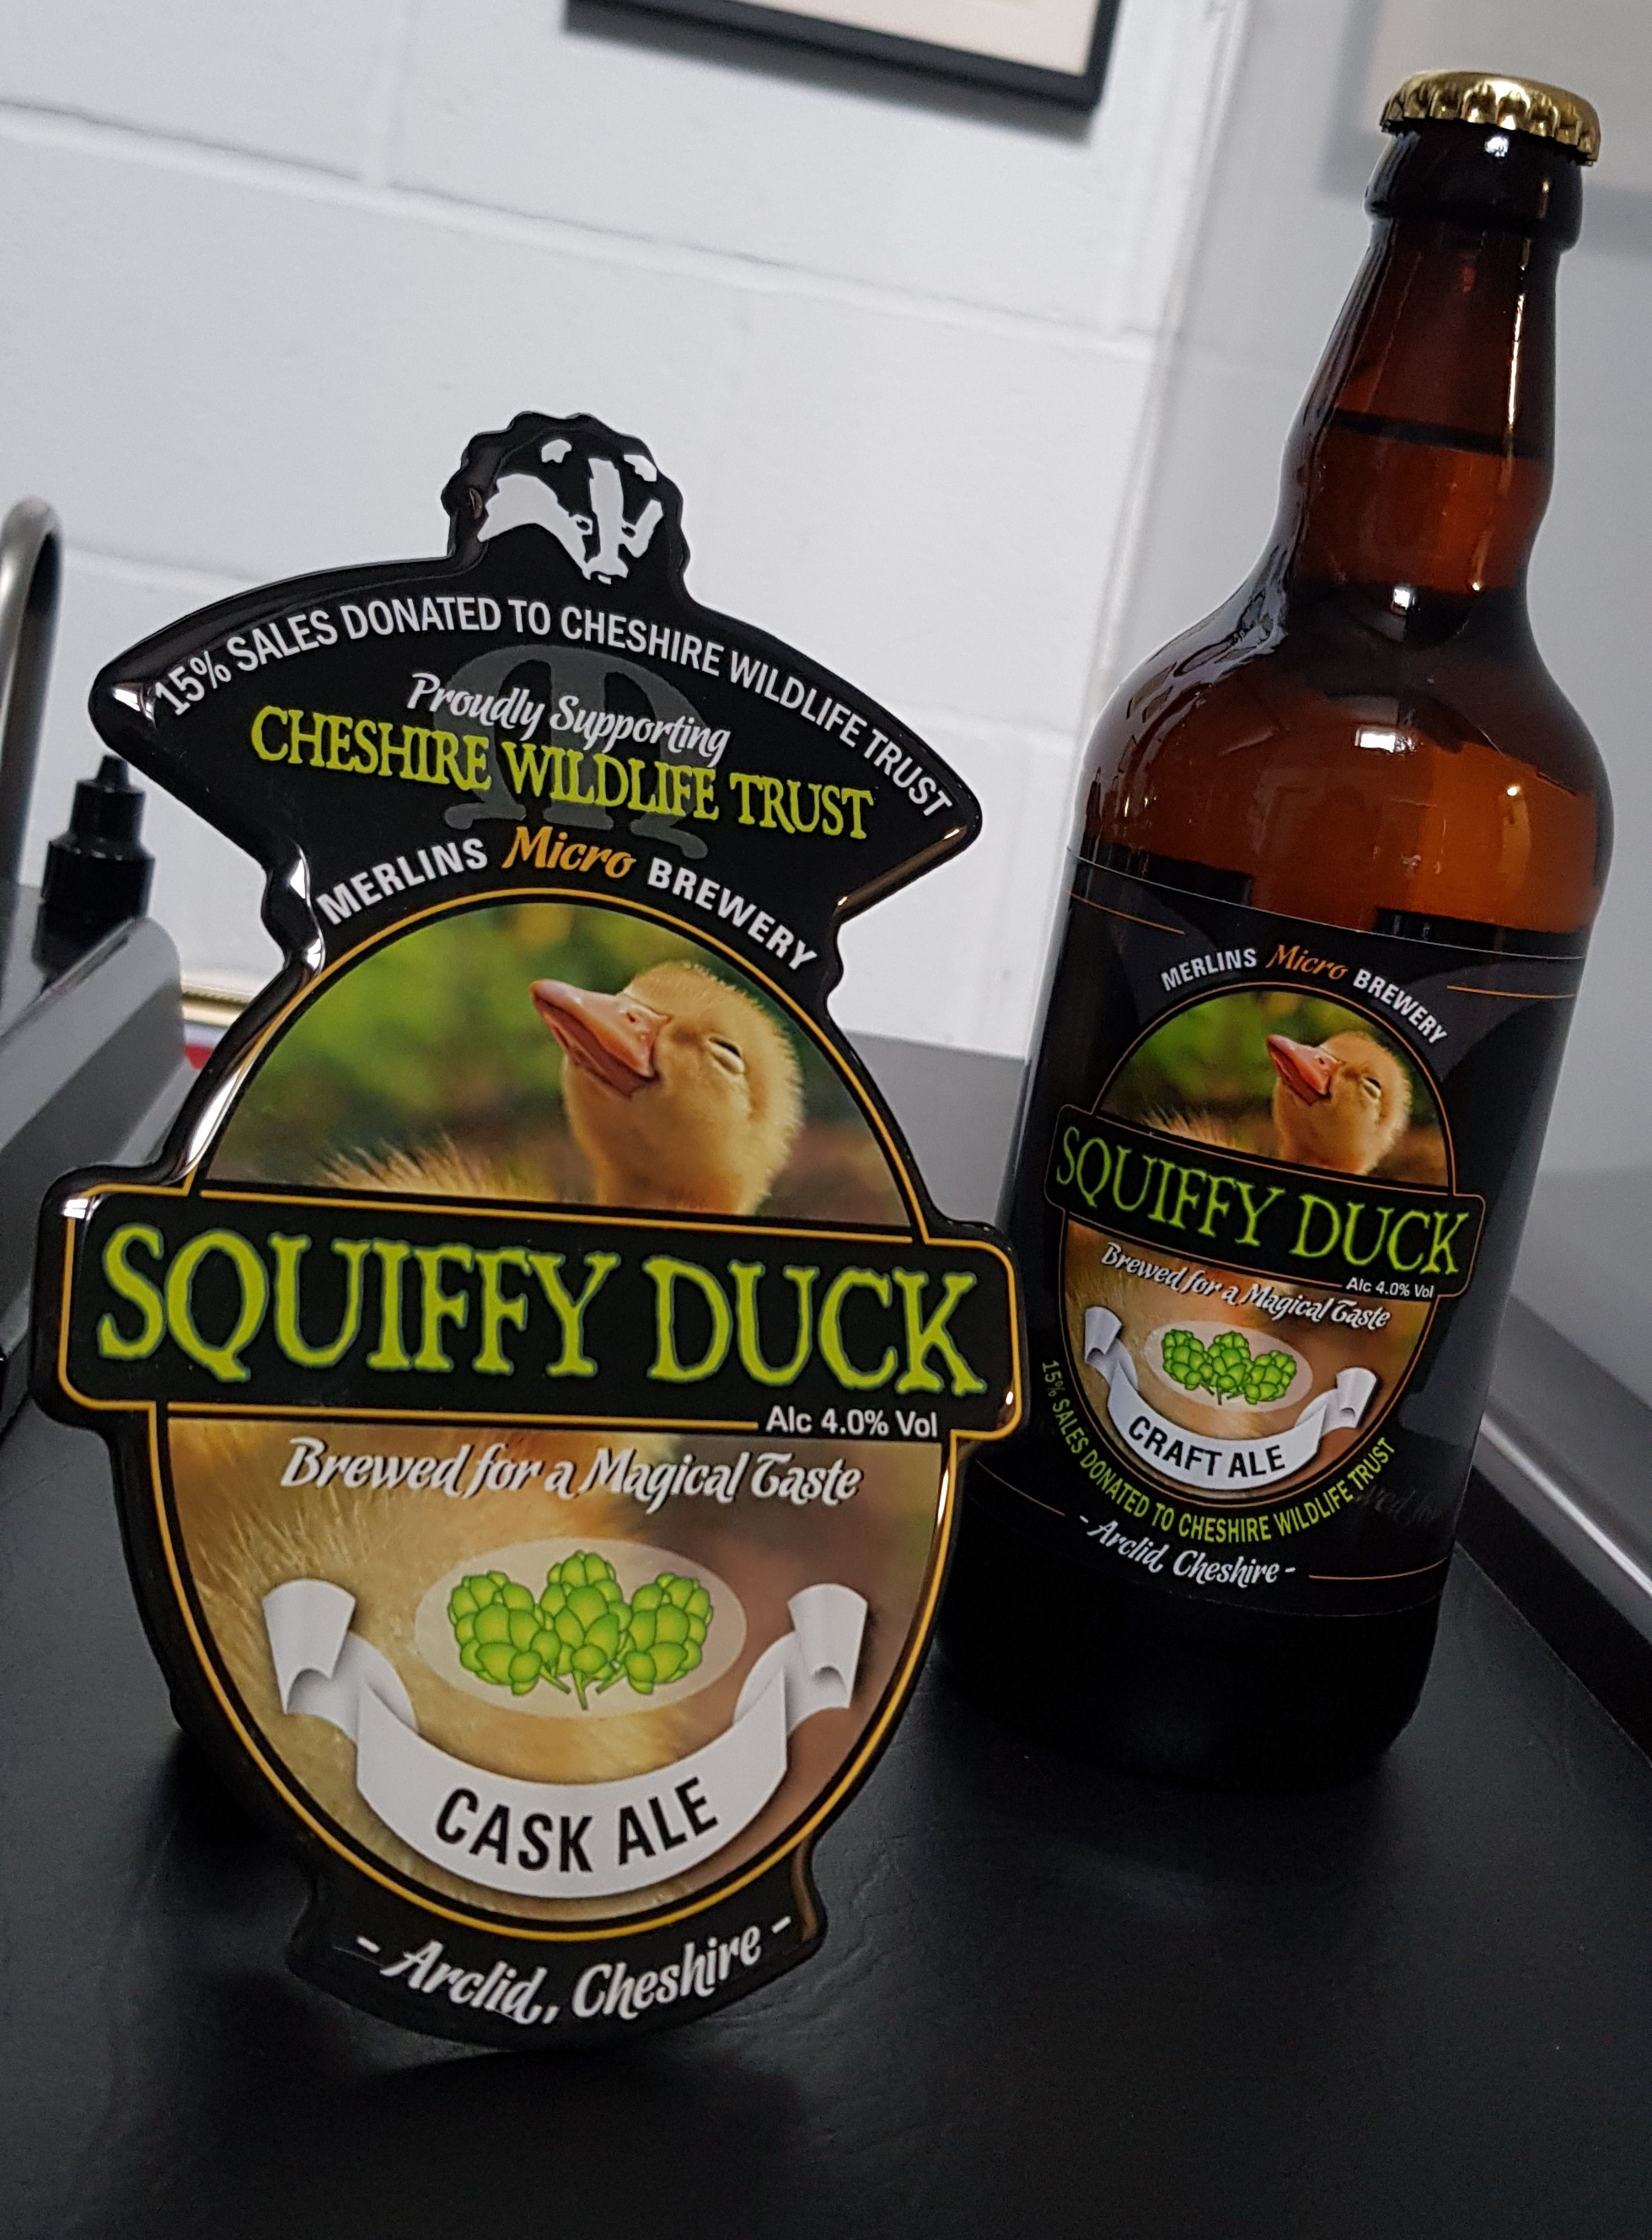 Squiffy Duck goes on sale this month to help raise cash for Cheshire Wildlife Trust